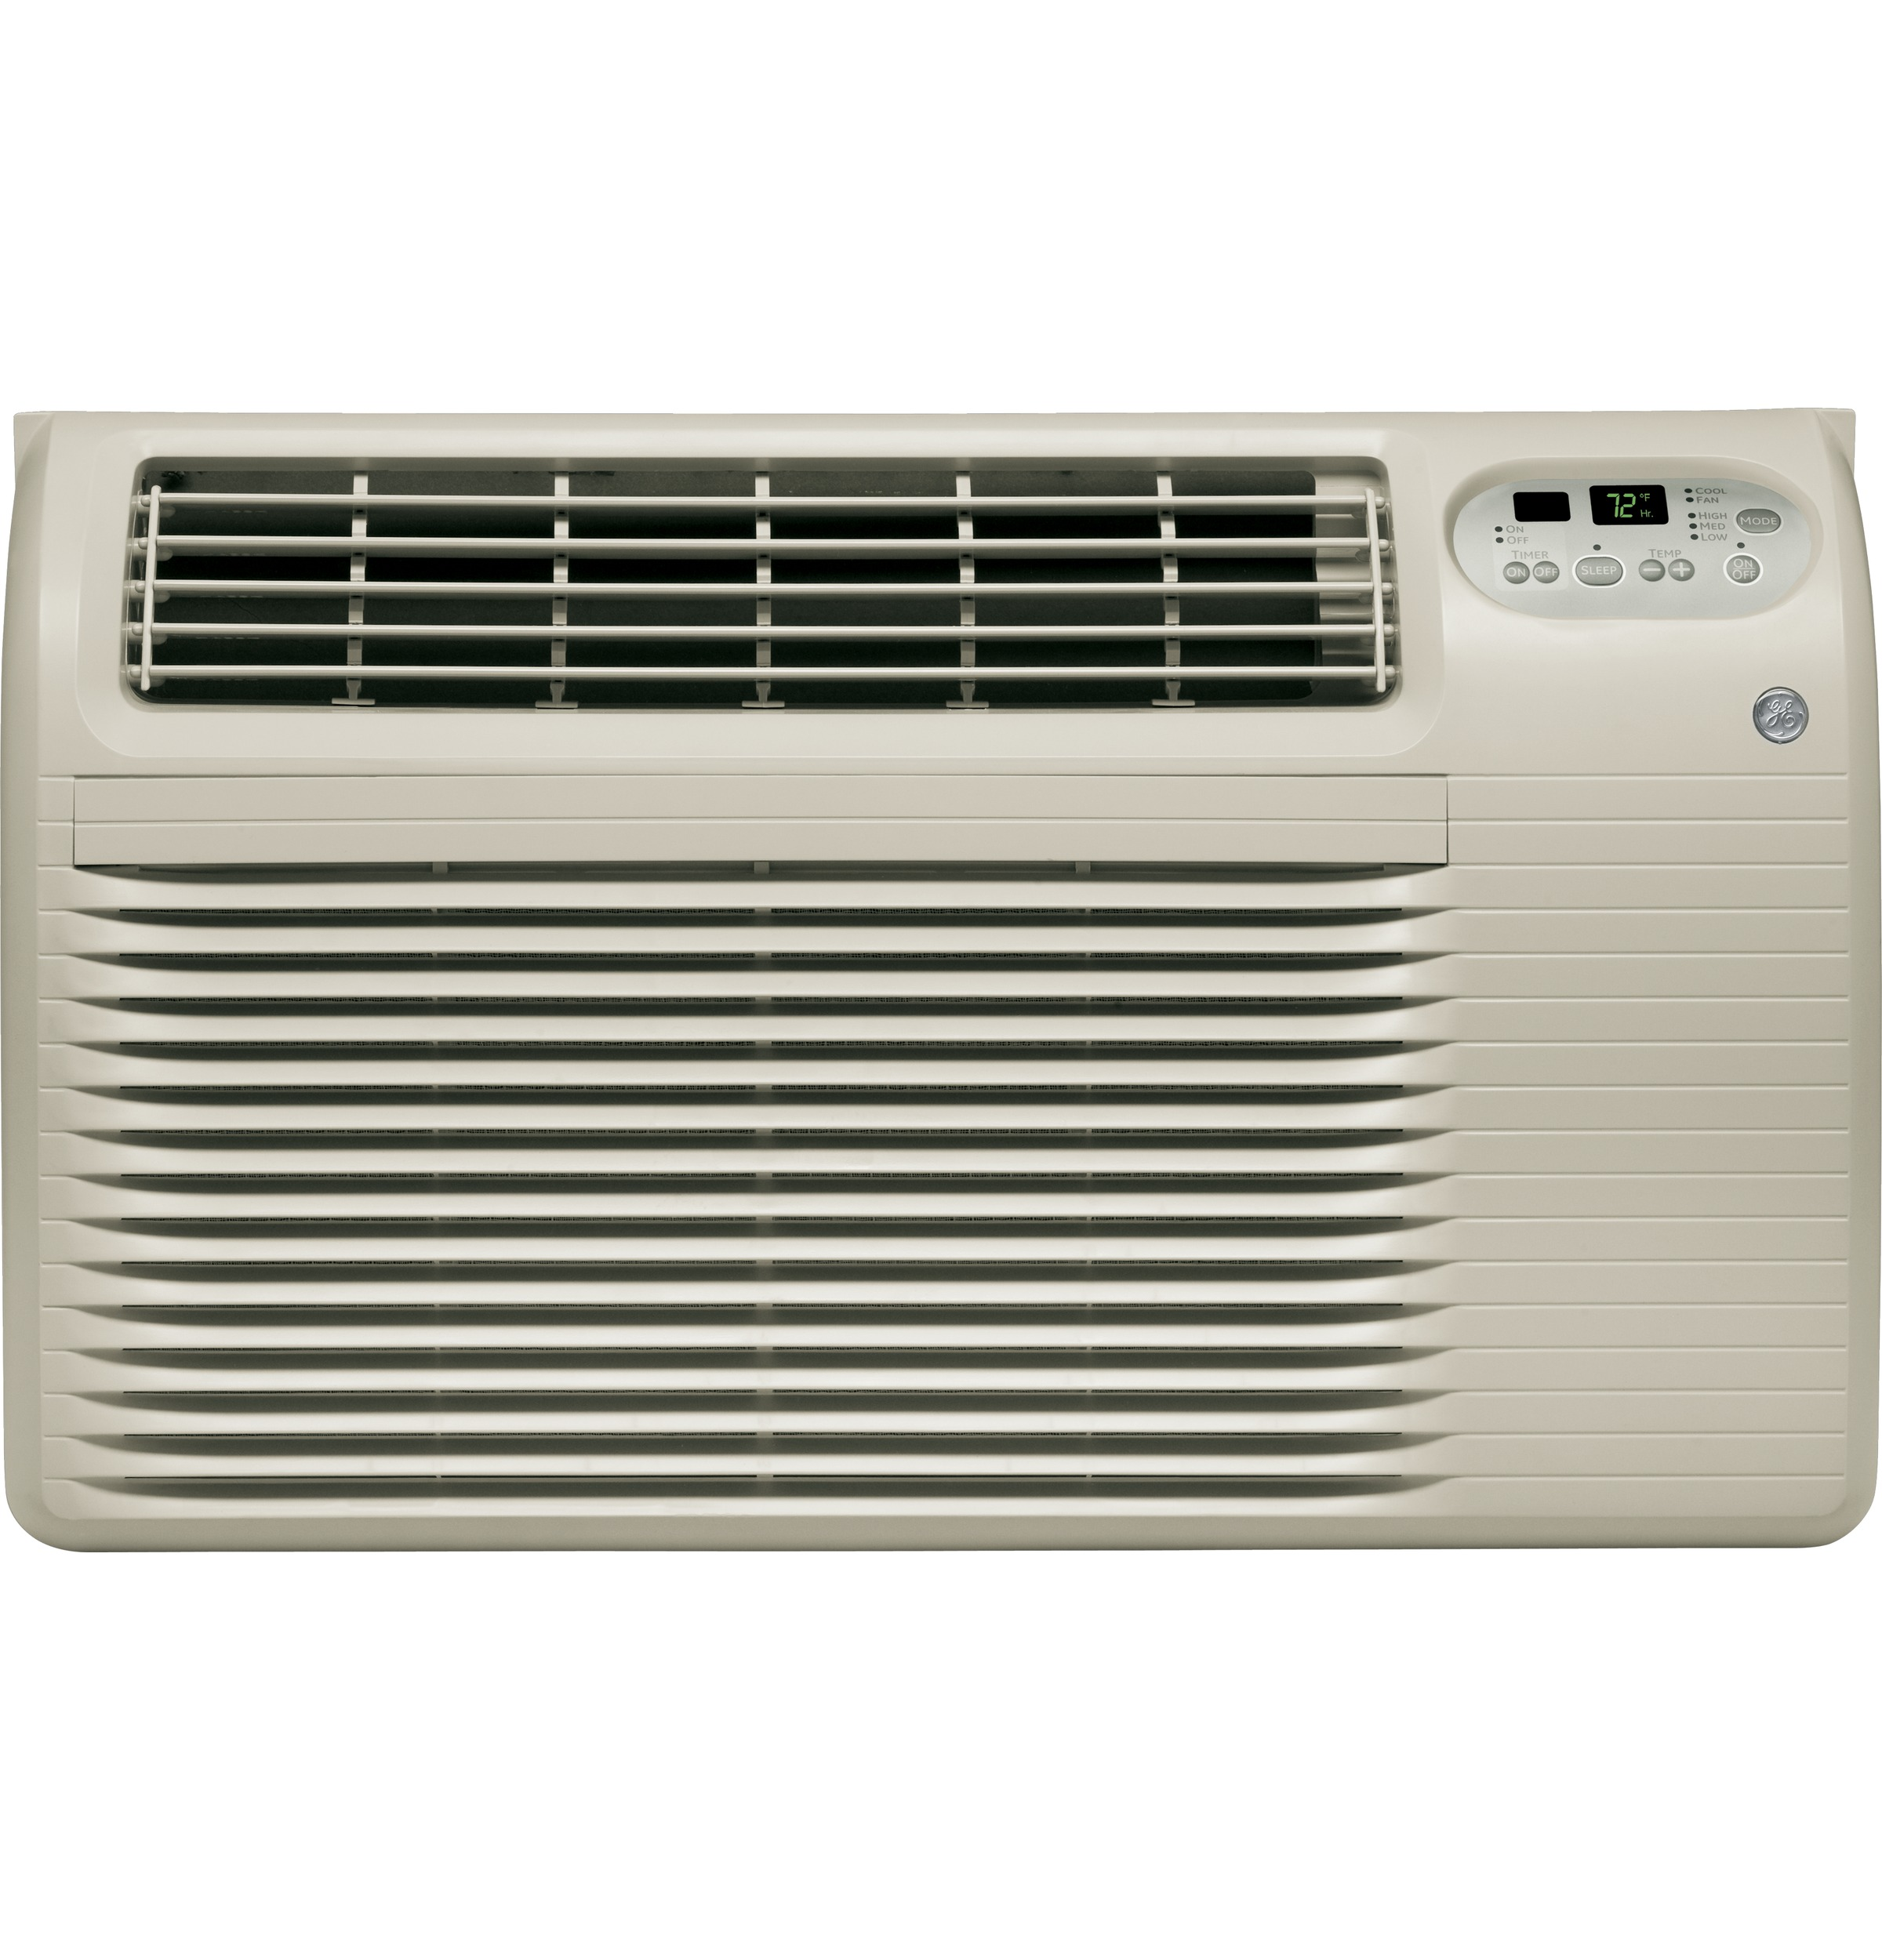 Brand: GE Model: AJCQ09DCE Style: 9 600 BTU Room Air Conditioner #756B56